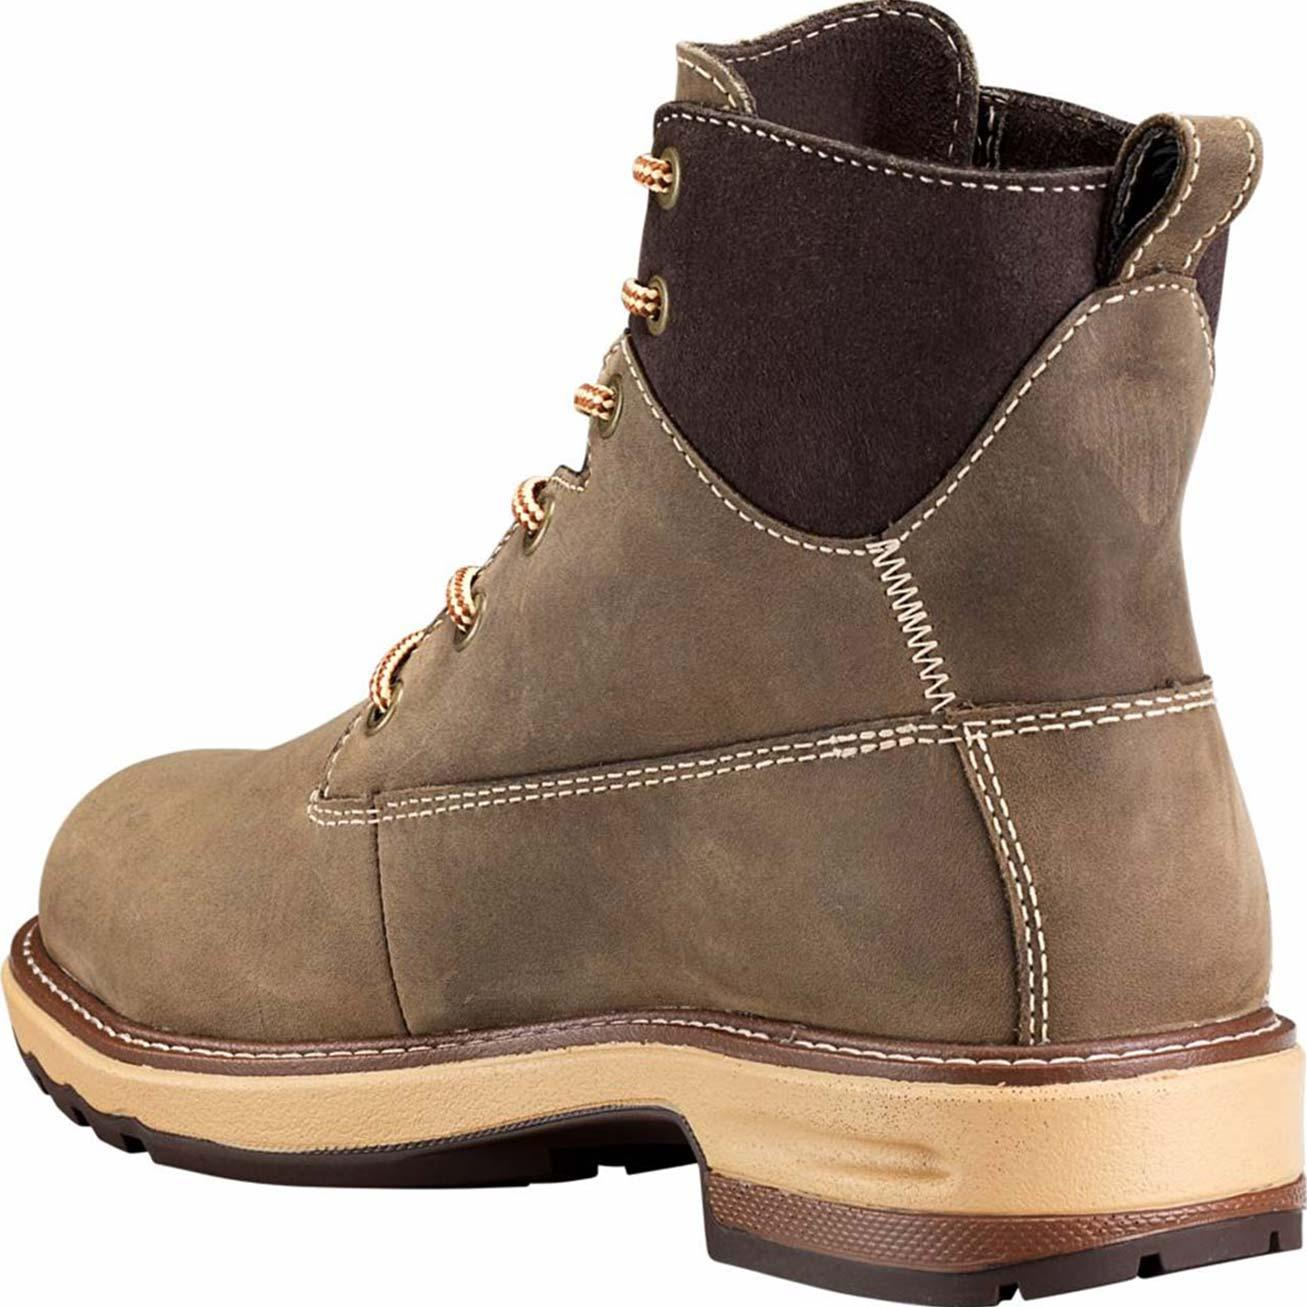 Images. Timberland PRO Hightower Women s Alloy Toe Waterproof Work Boot ... 4d4cafeb80